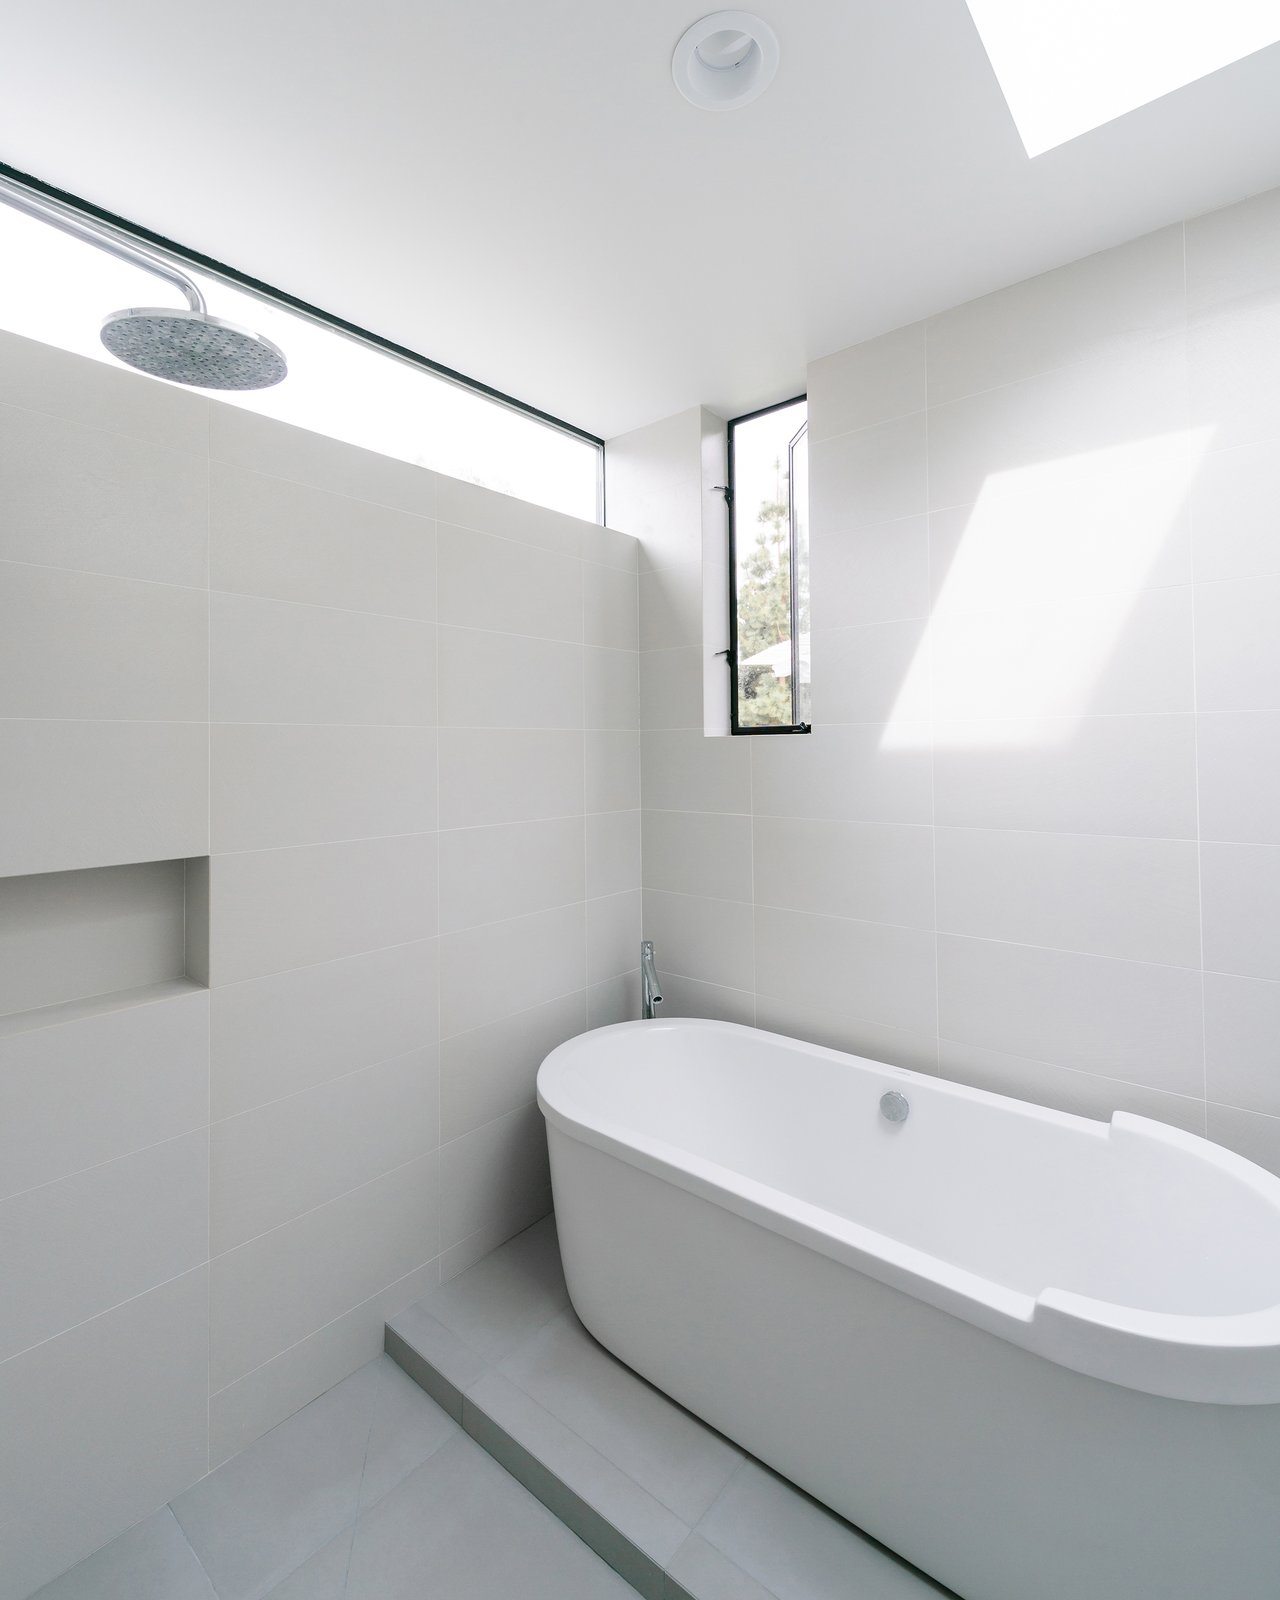 Bath Room, Porcelain Tile Floor, Recessed Lighting, Freestanding Tub, Porcelain Tile Wall, Ceiling Lighting, and Open Shower At the rear of the home, the master suite addition adds a full wet room with skylight, a rain shower and freestanding tub.  Villa Park Modern by MYD studio, inc.